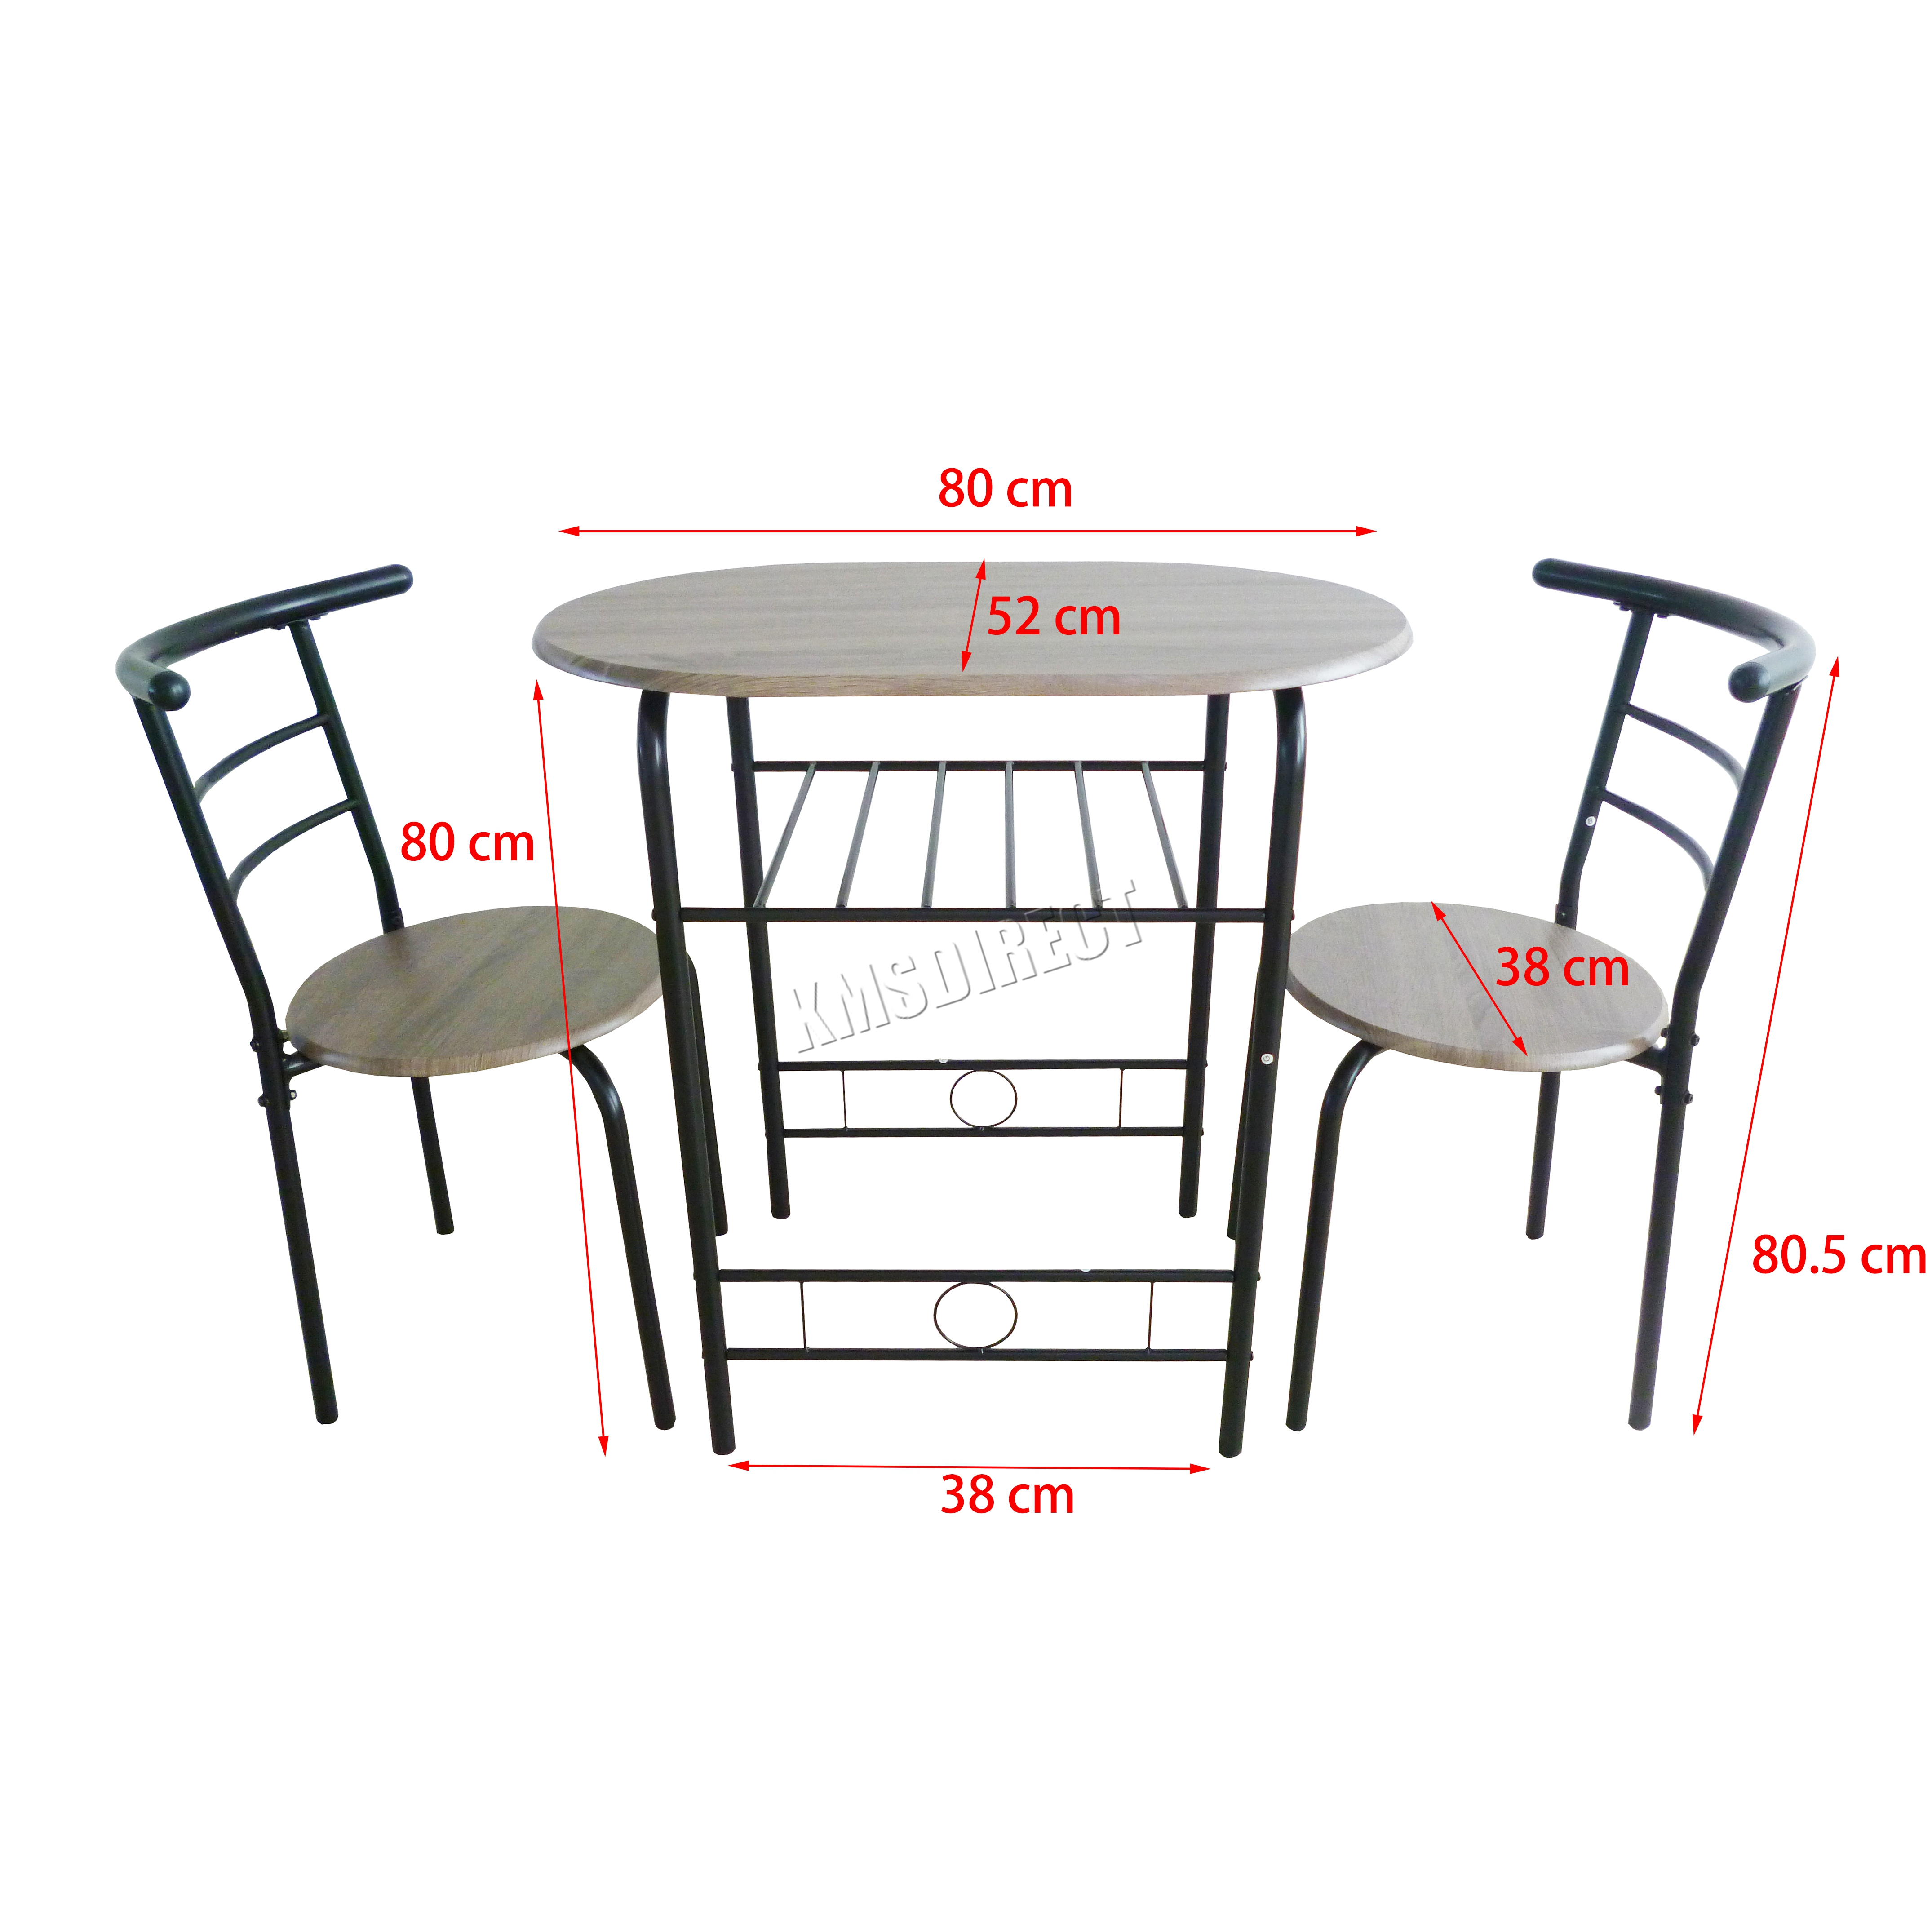 aluminum kitchen chairs full foxhunter compact dining table breakfast bar 2 chair set